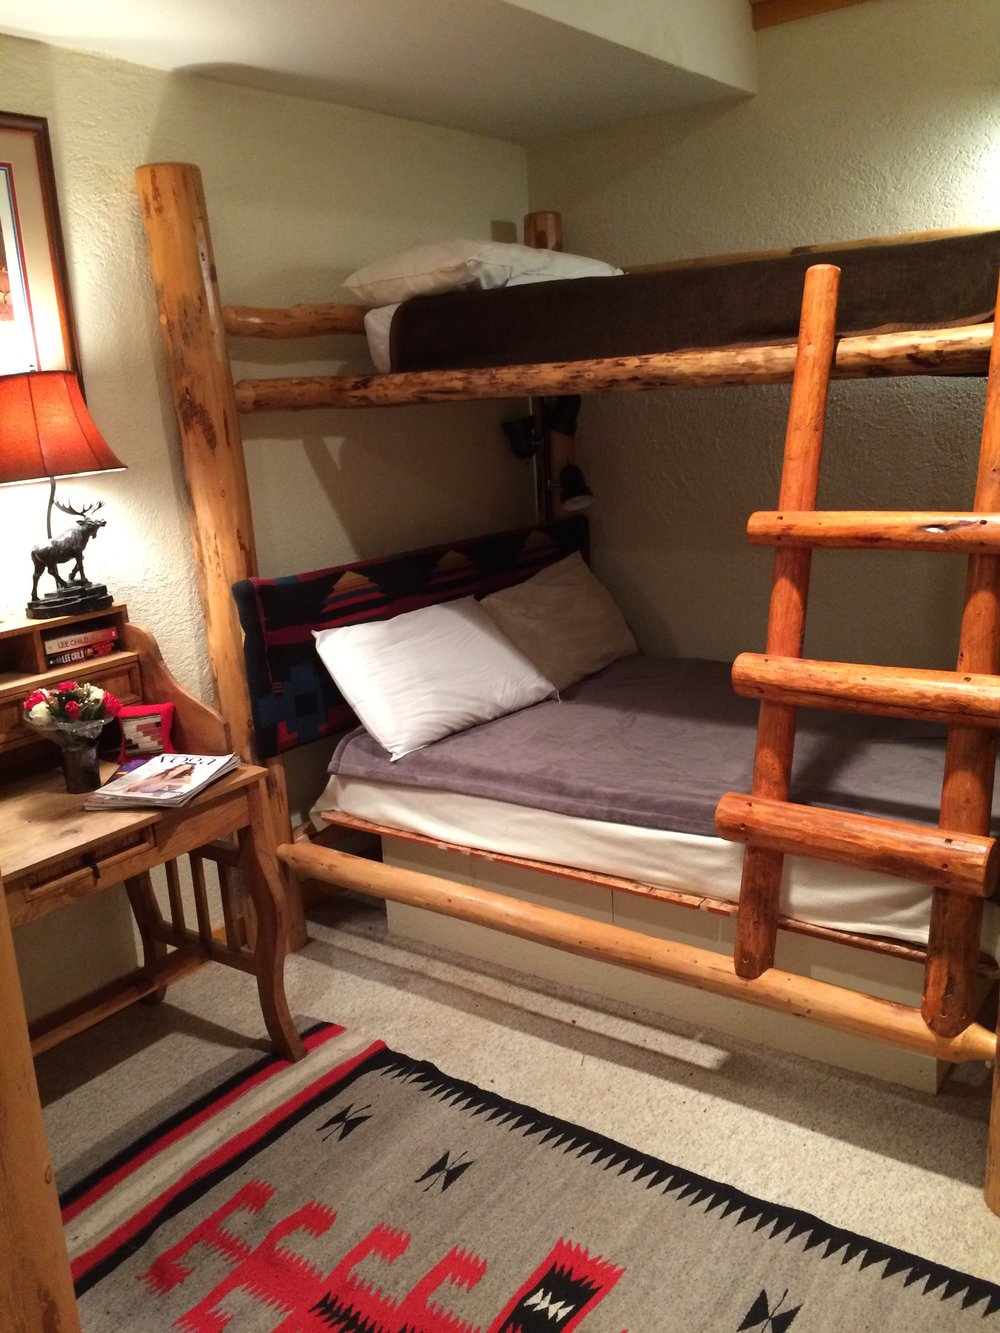 Shared Bunk Room